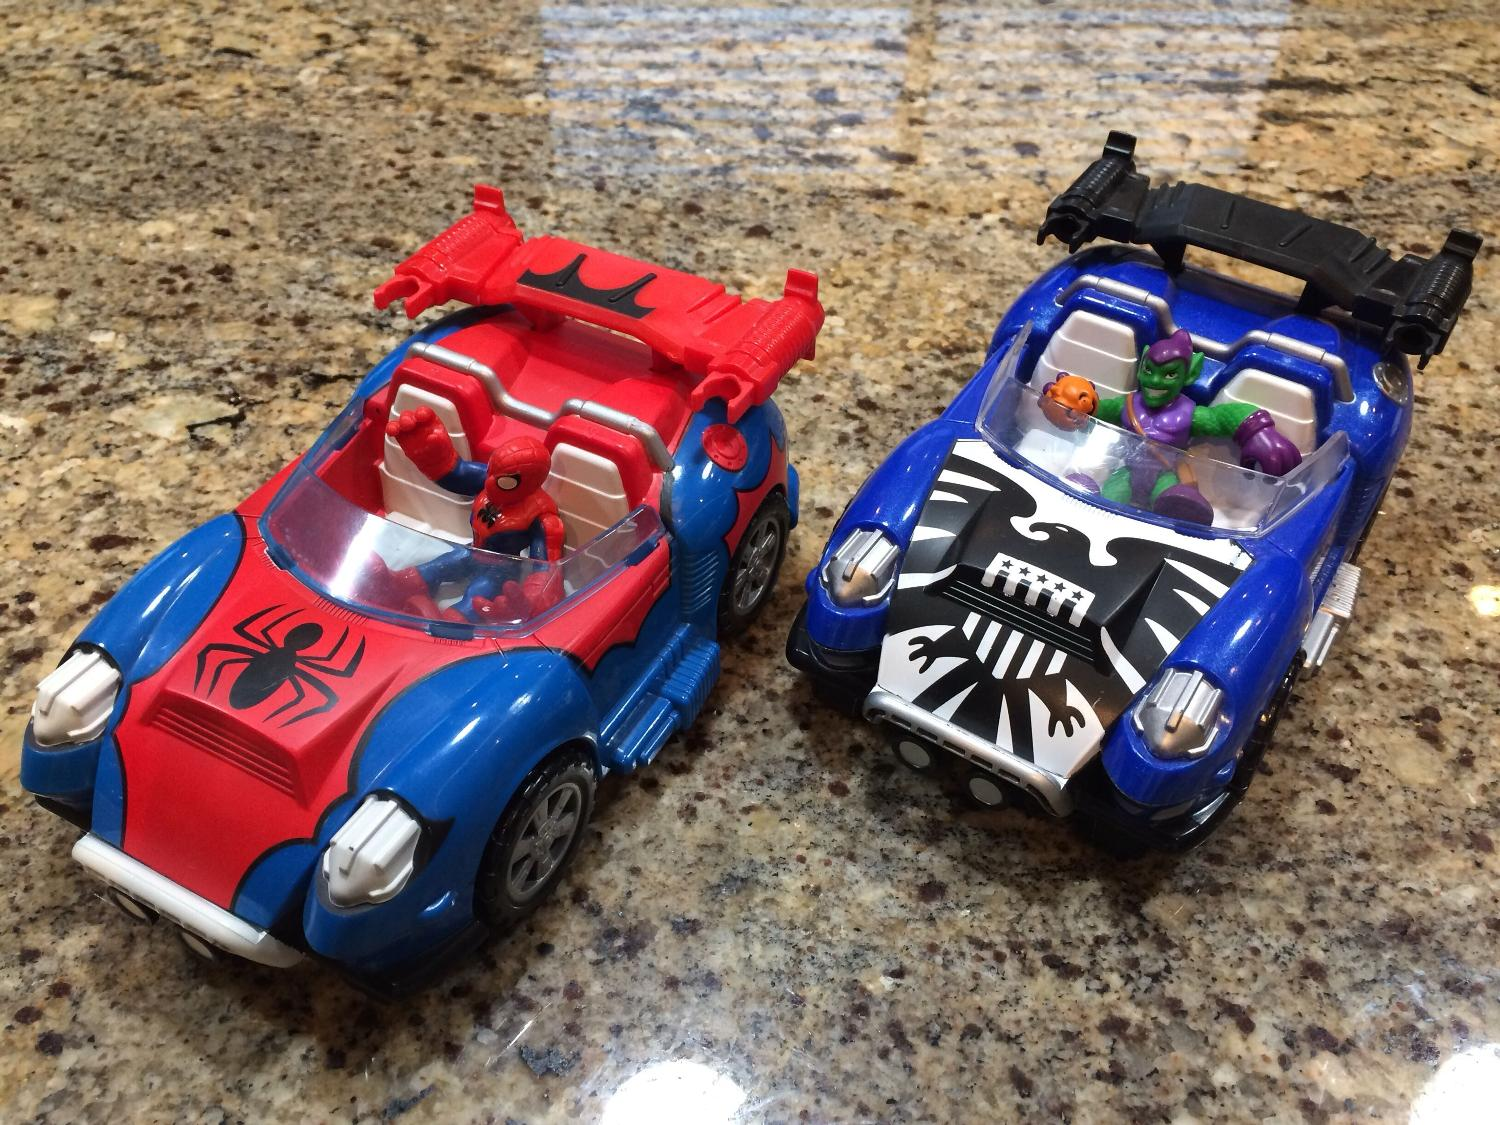 Best Spider Man And Green Goblin Characters With Cars For Sale In Victoria British Columbia For 2020